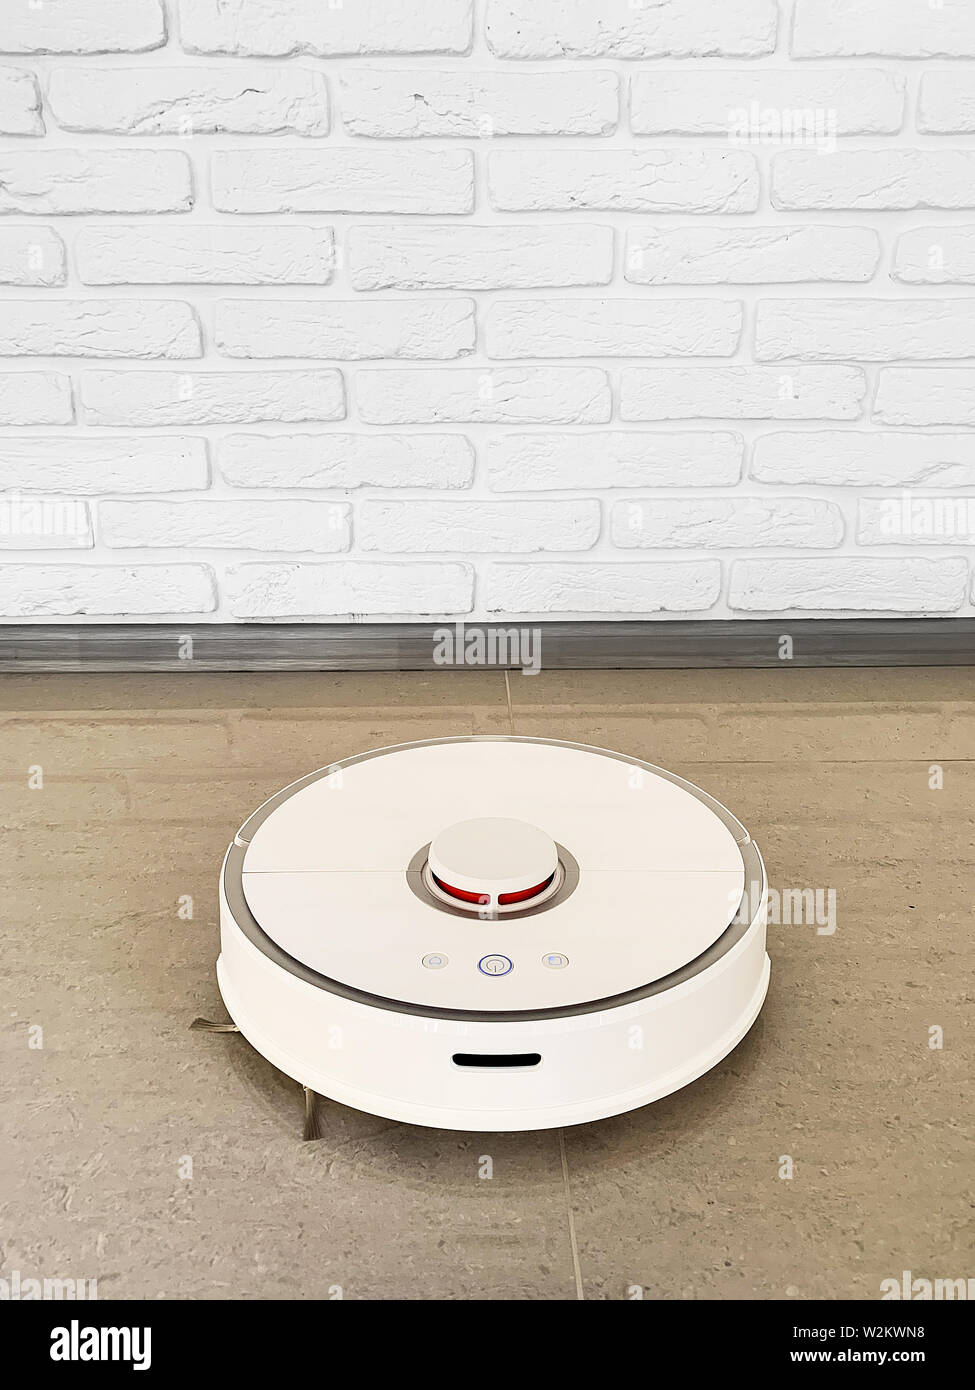 Smart House. Vacuum cleaner robot runs on floor in a living room. - Stock Image